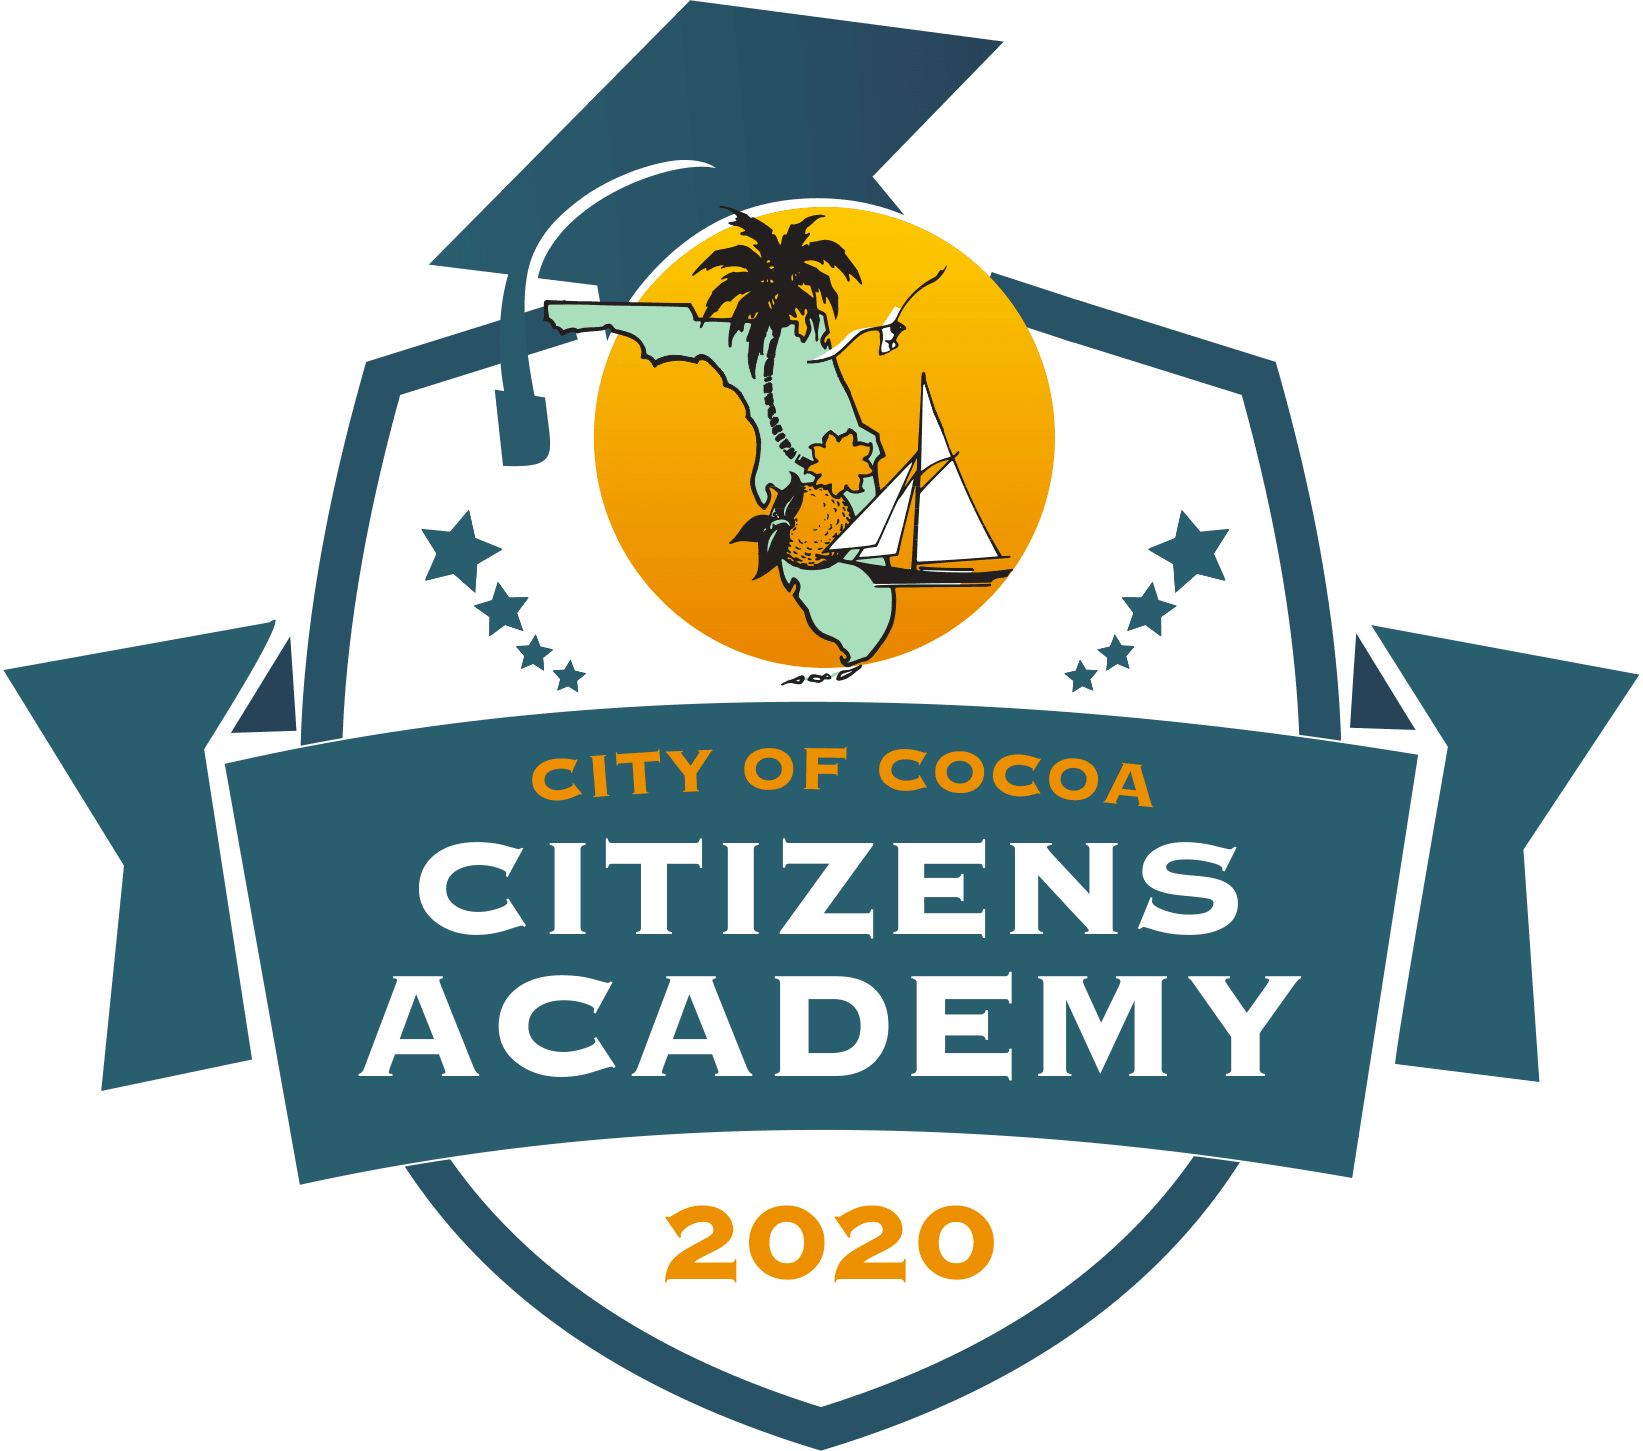 Citizens Academy 2020 logo